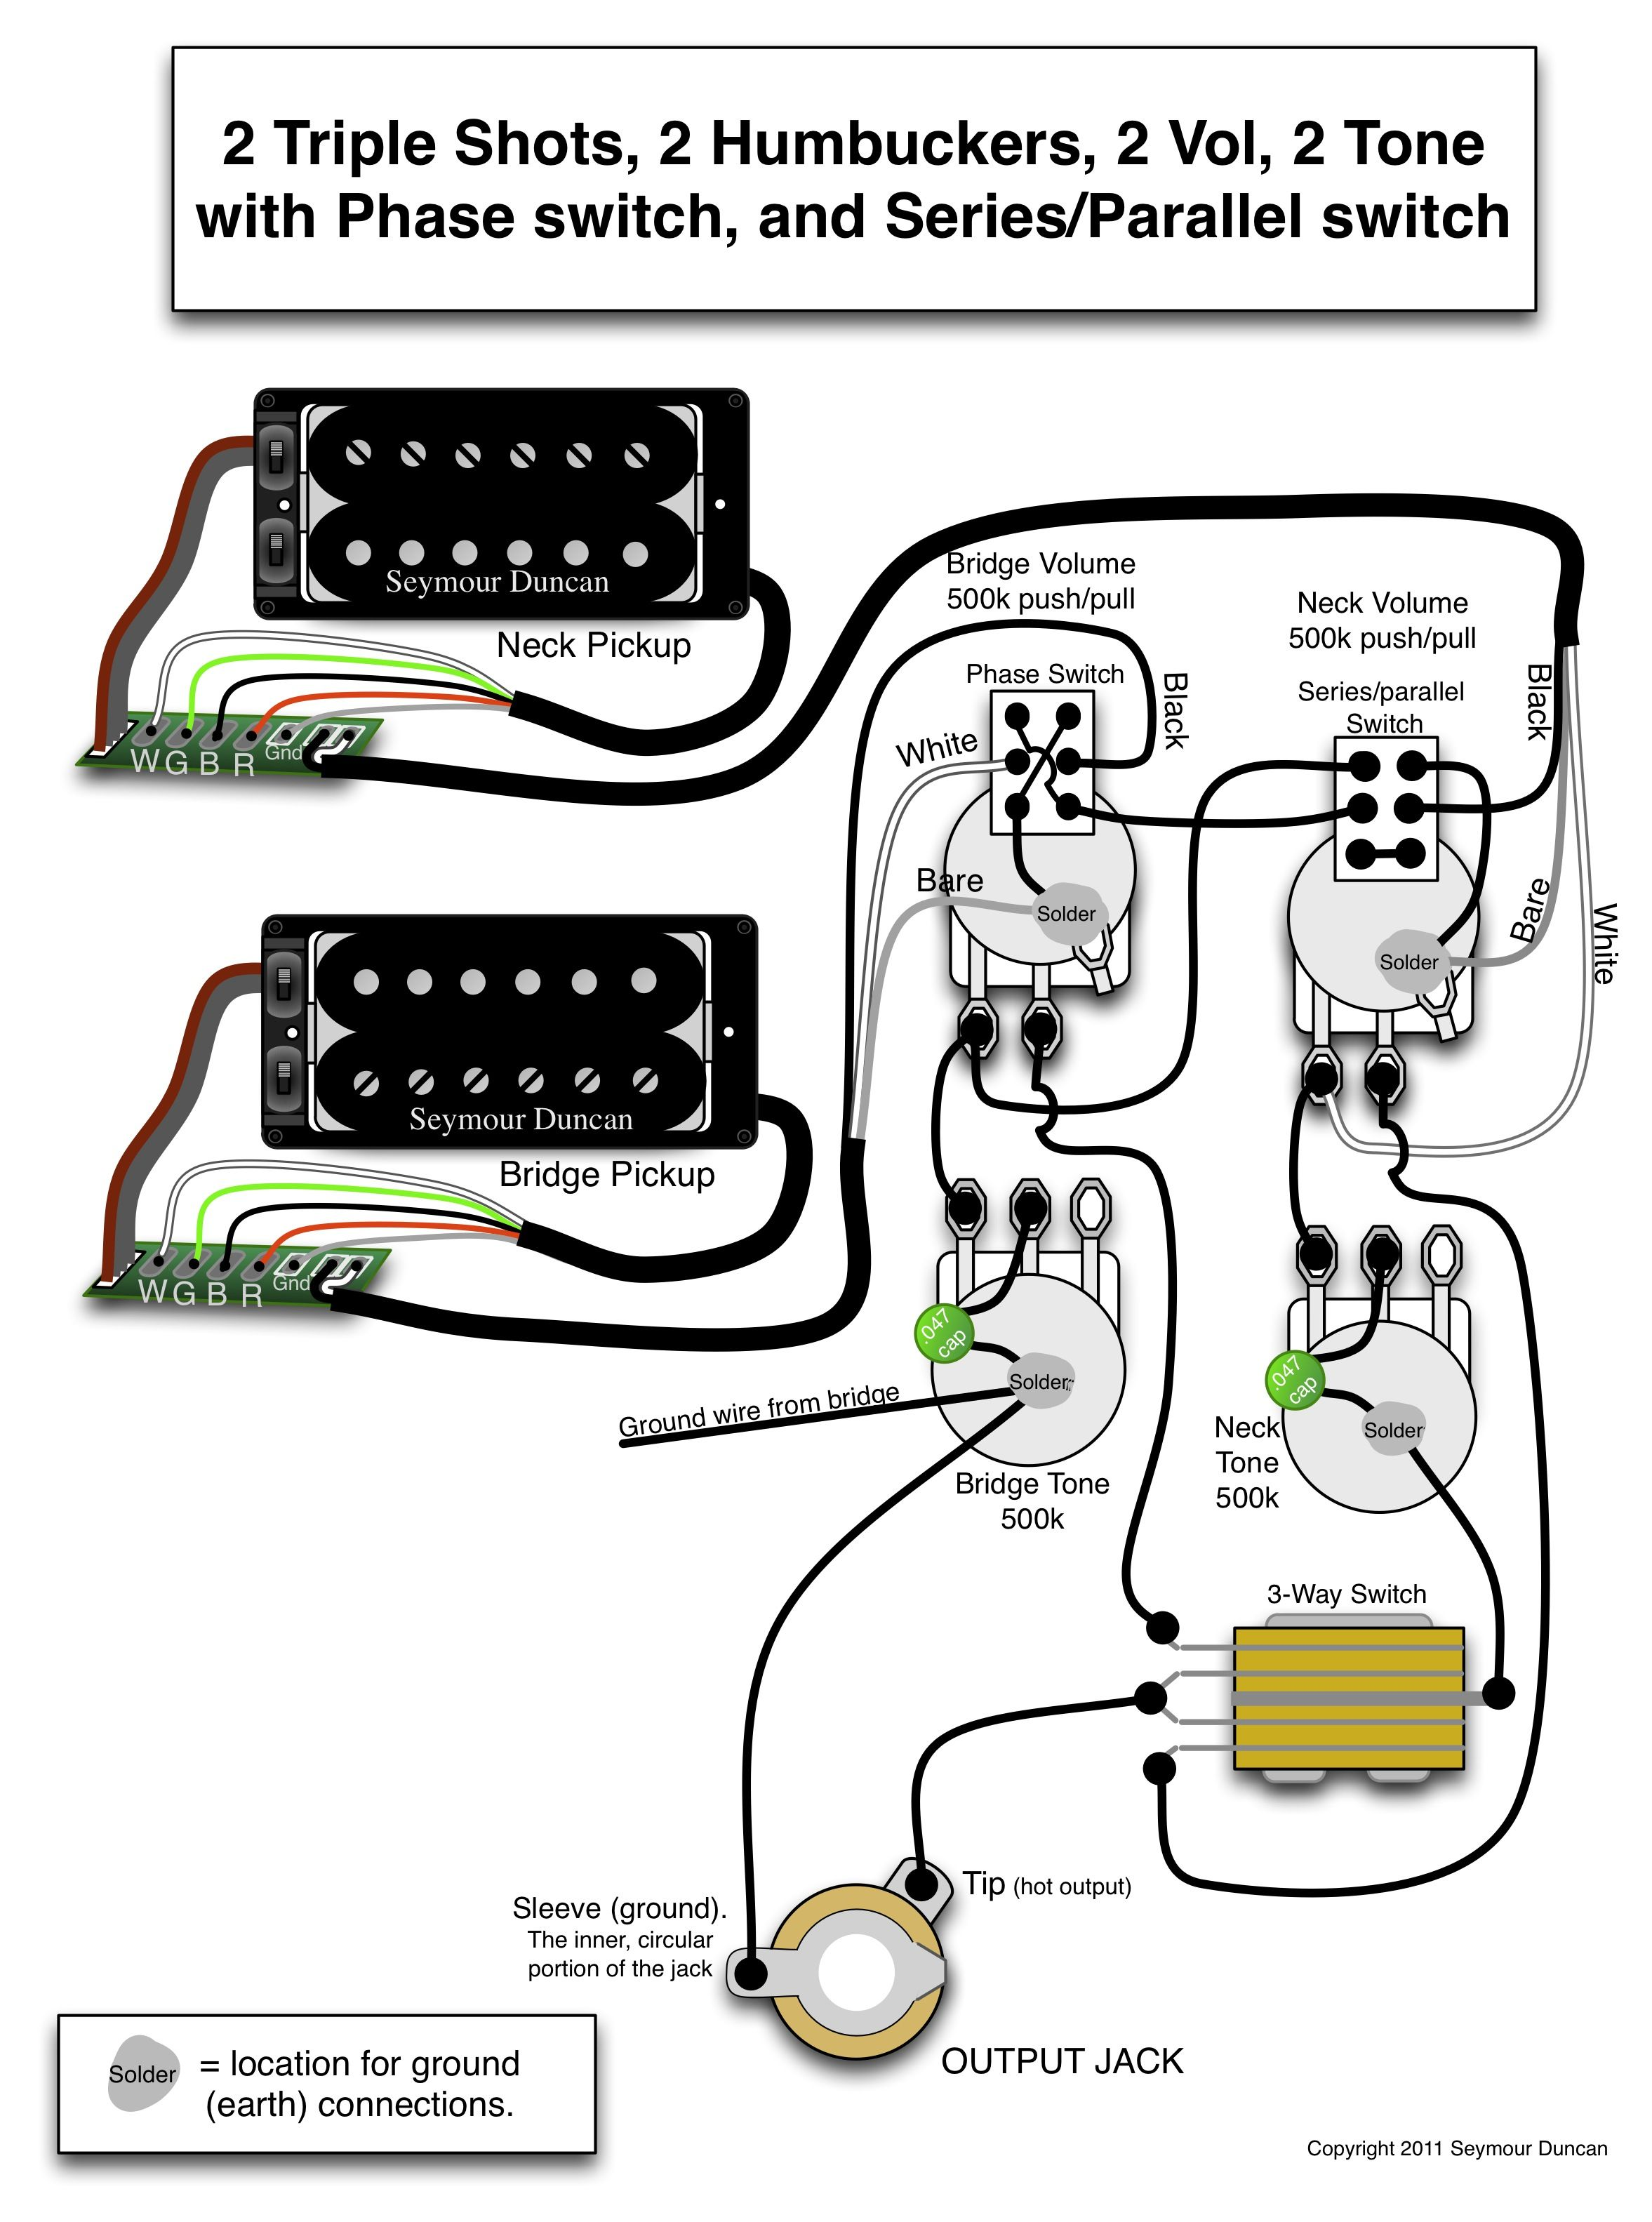 14dc4408abcf3c075a00cd280c1ea7ec seymour duncan wiring diagram 2 triple shots, 2 humbuckers, 2  at suagrazia.org